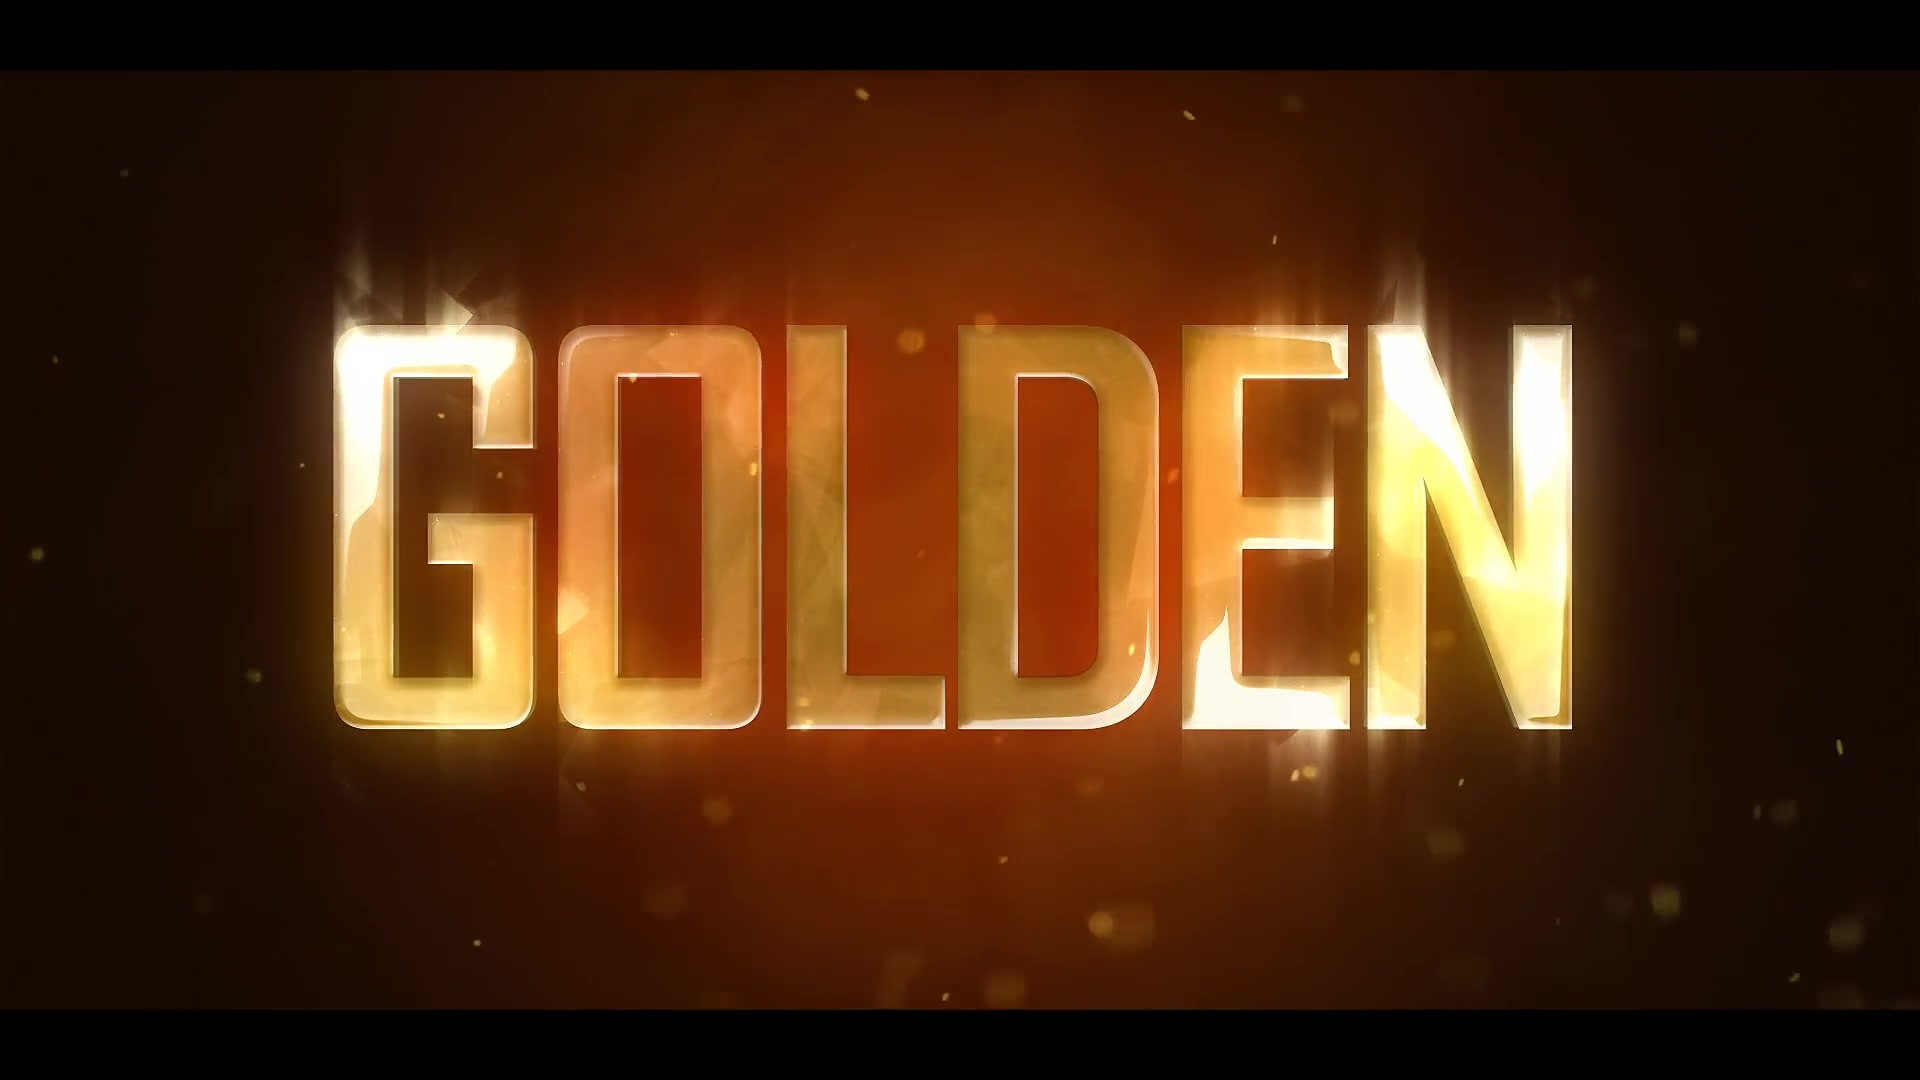 Golden Brilliant Logo Reveal Videohive 19435270 After Effects Image 2